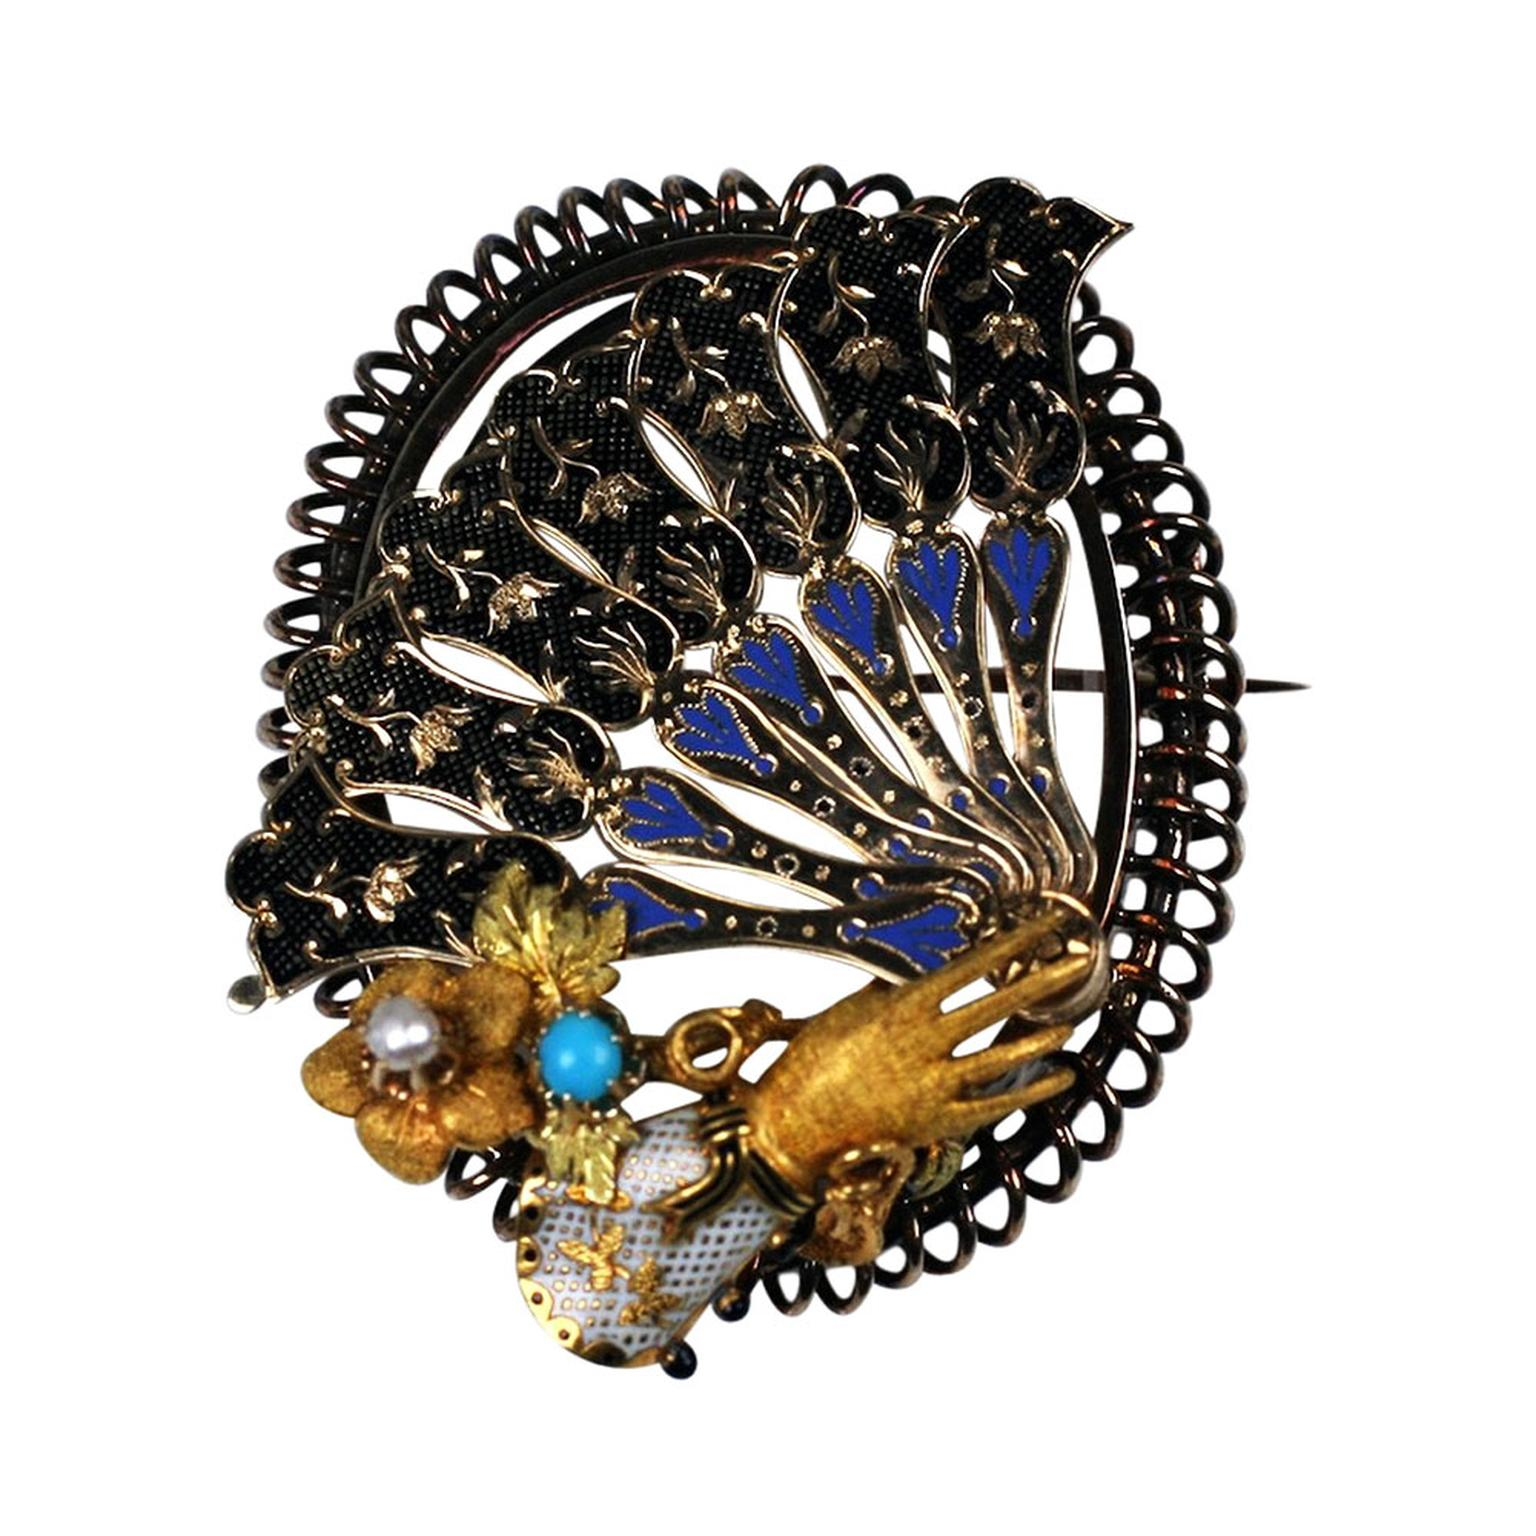 Vintage Luxury brooch